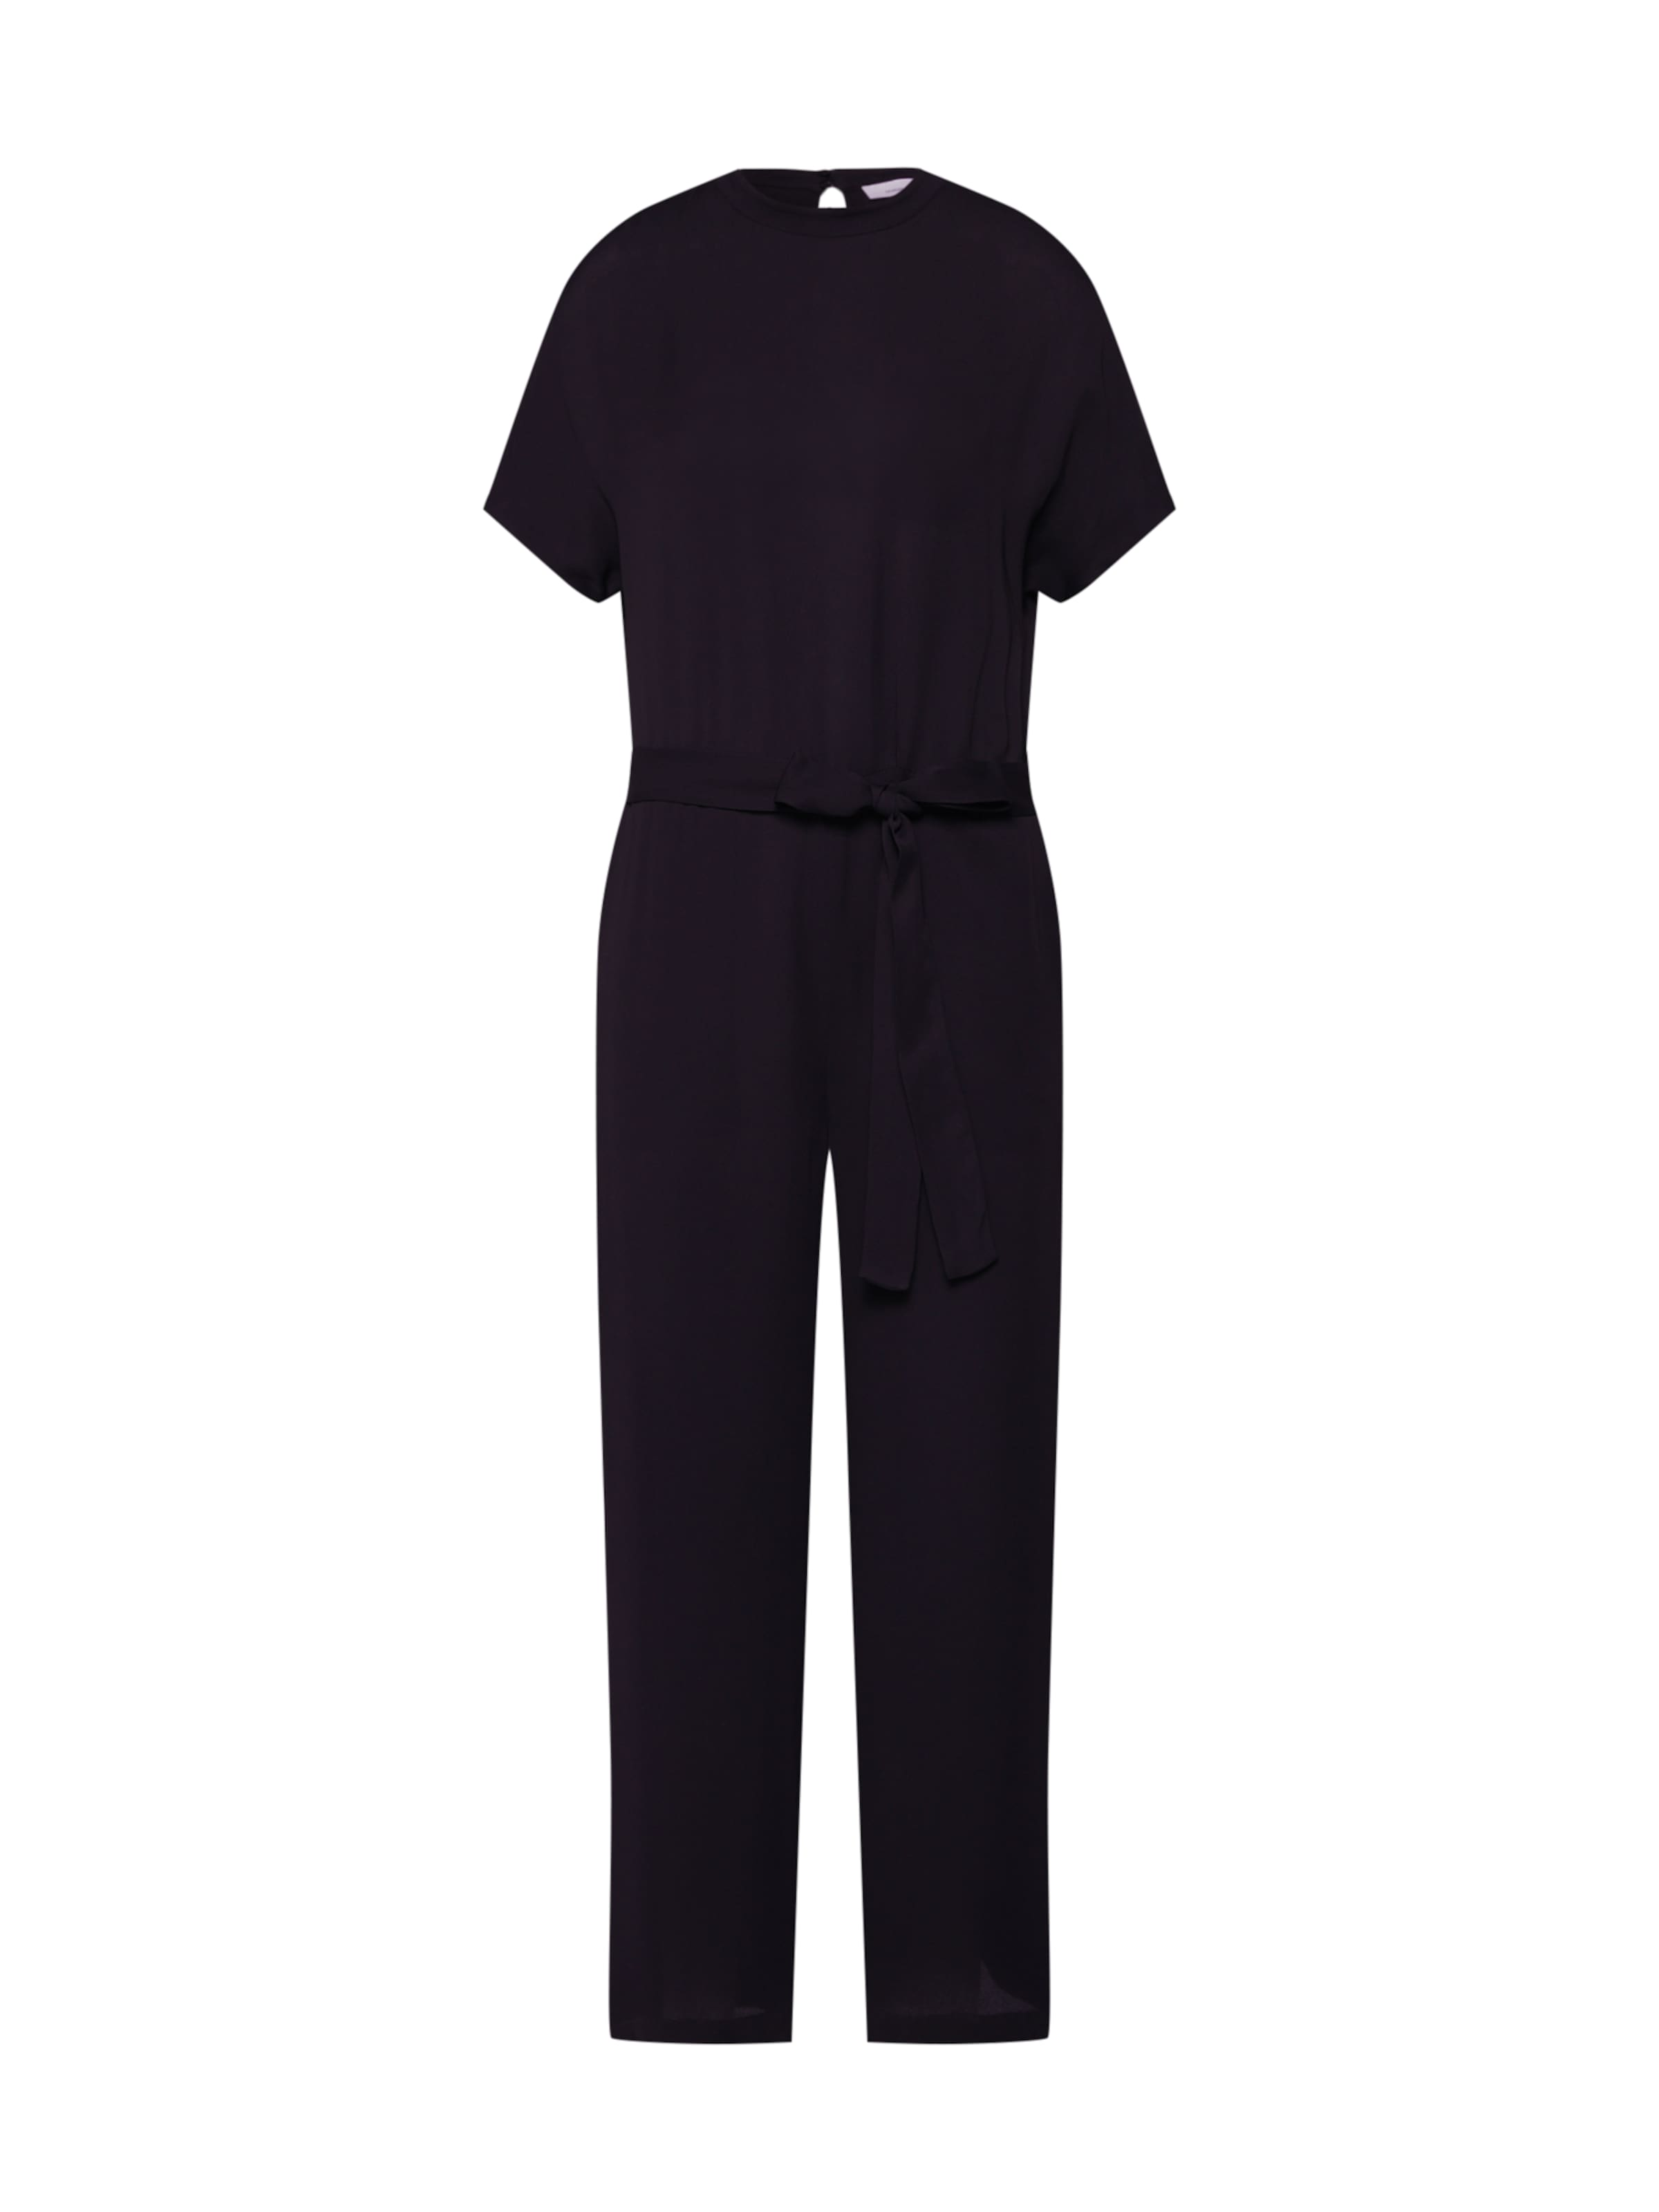 Overall 'kimberly Schwarz Jumpsuit Samsoeamp; In 6616' xoWrdCeB